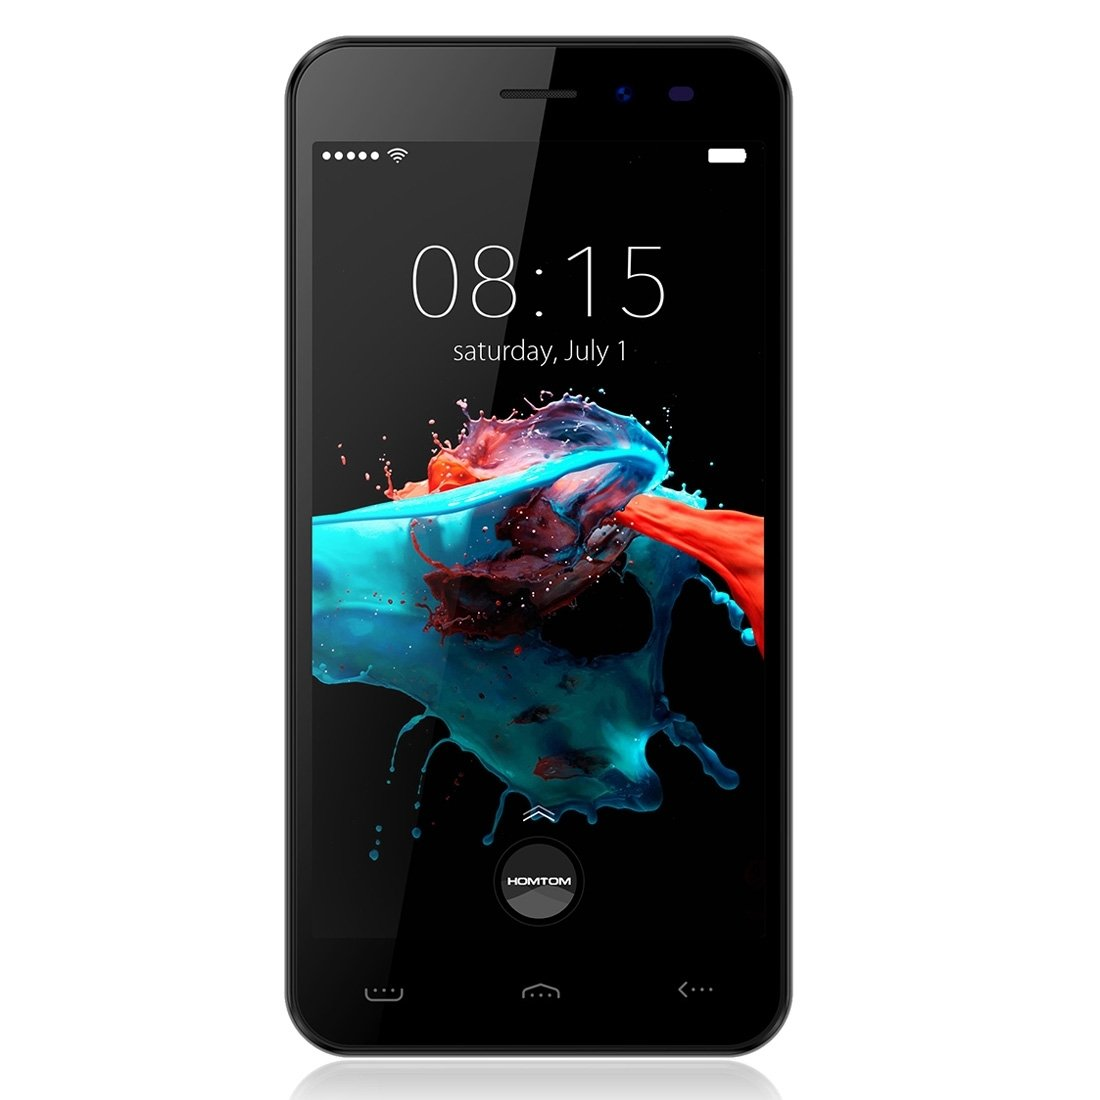 HOMTOM HT16 5.0 inch 1GB RAM + 8GB ROM Dual SIM Android 6.0 MTK6580 Quad Core up to 1.3GHz 3G Network Smartphone, Support Smart Gestures+ Wake Gesture (Black) by HOMTOM (Image #1)